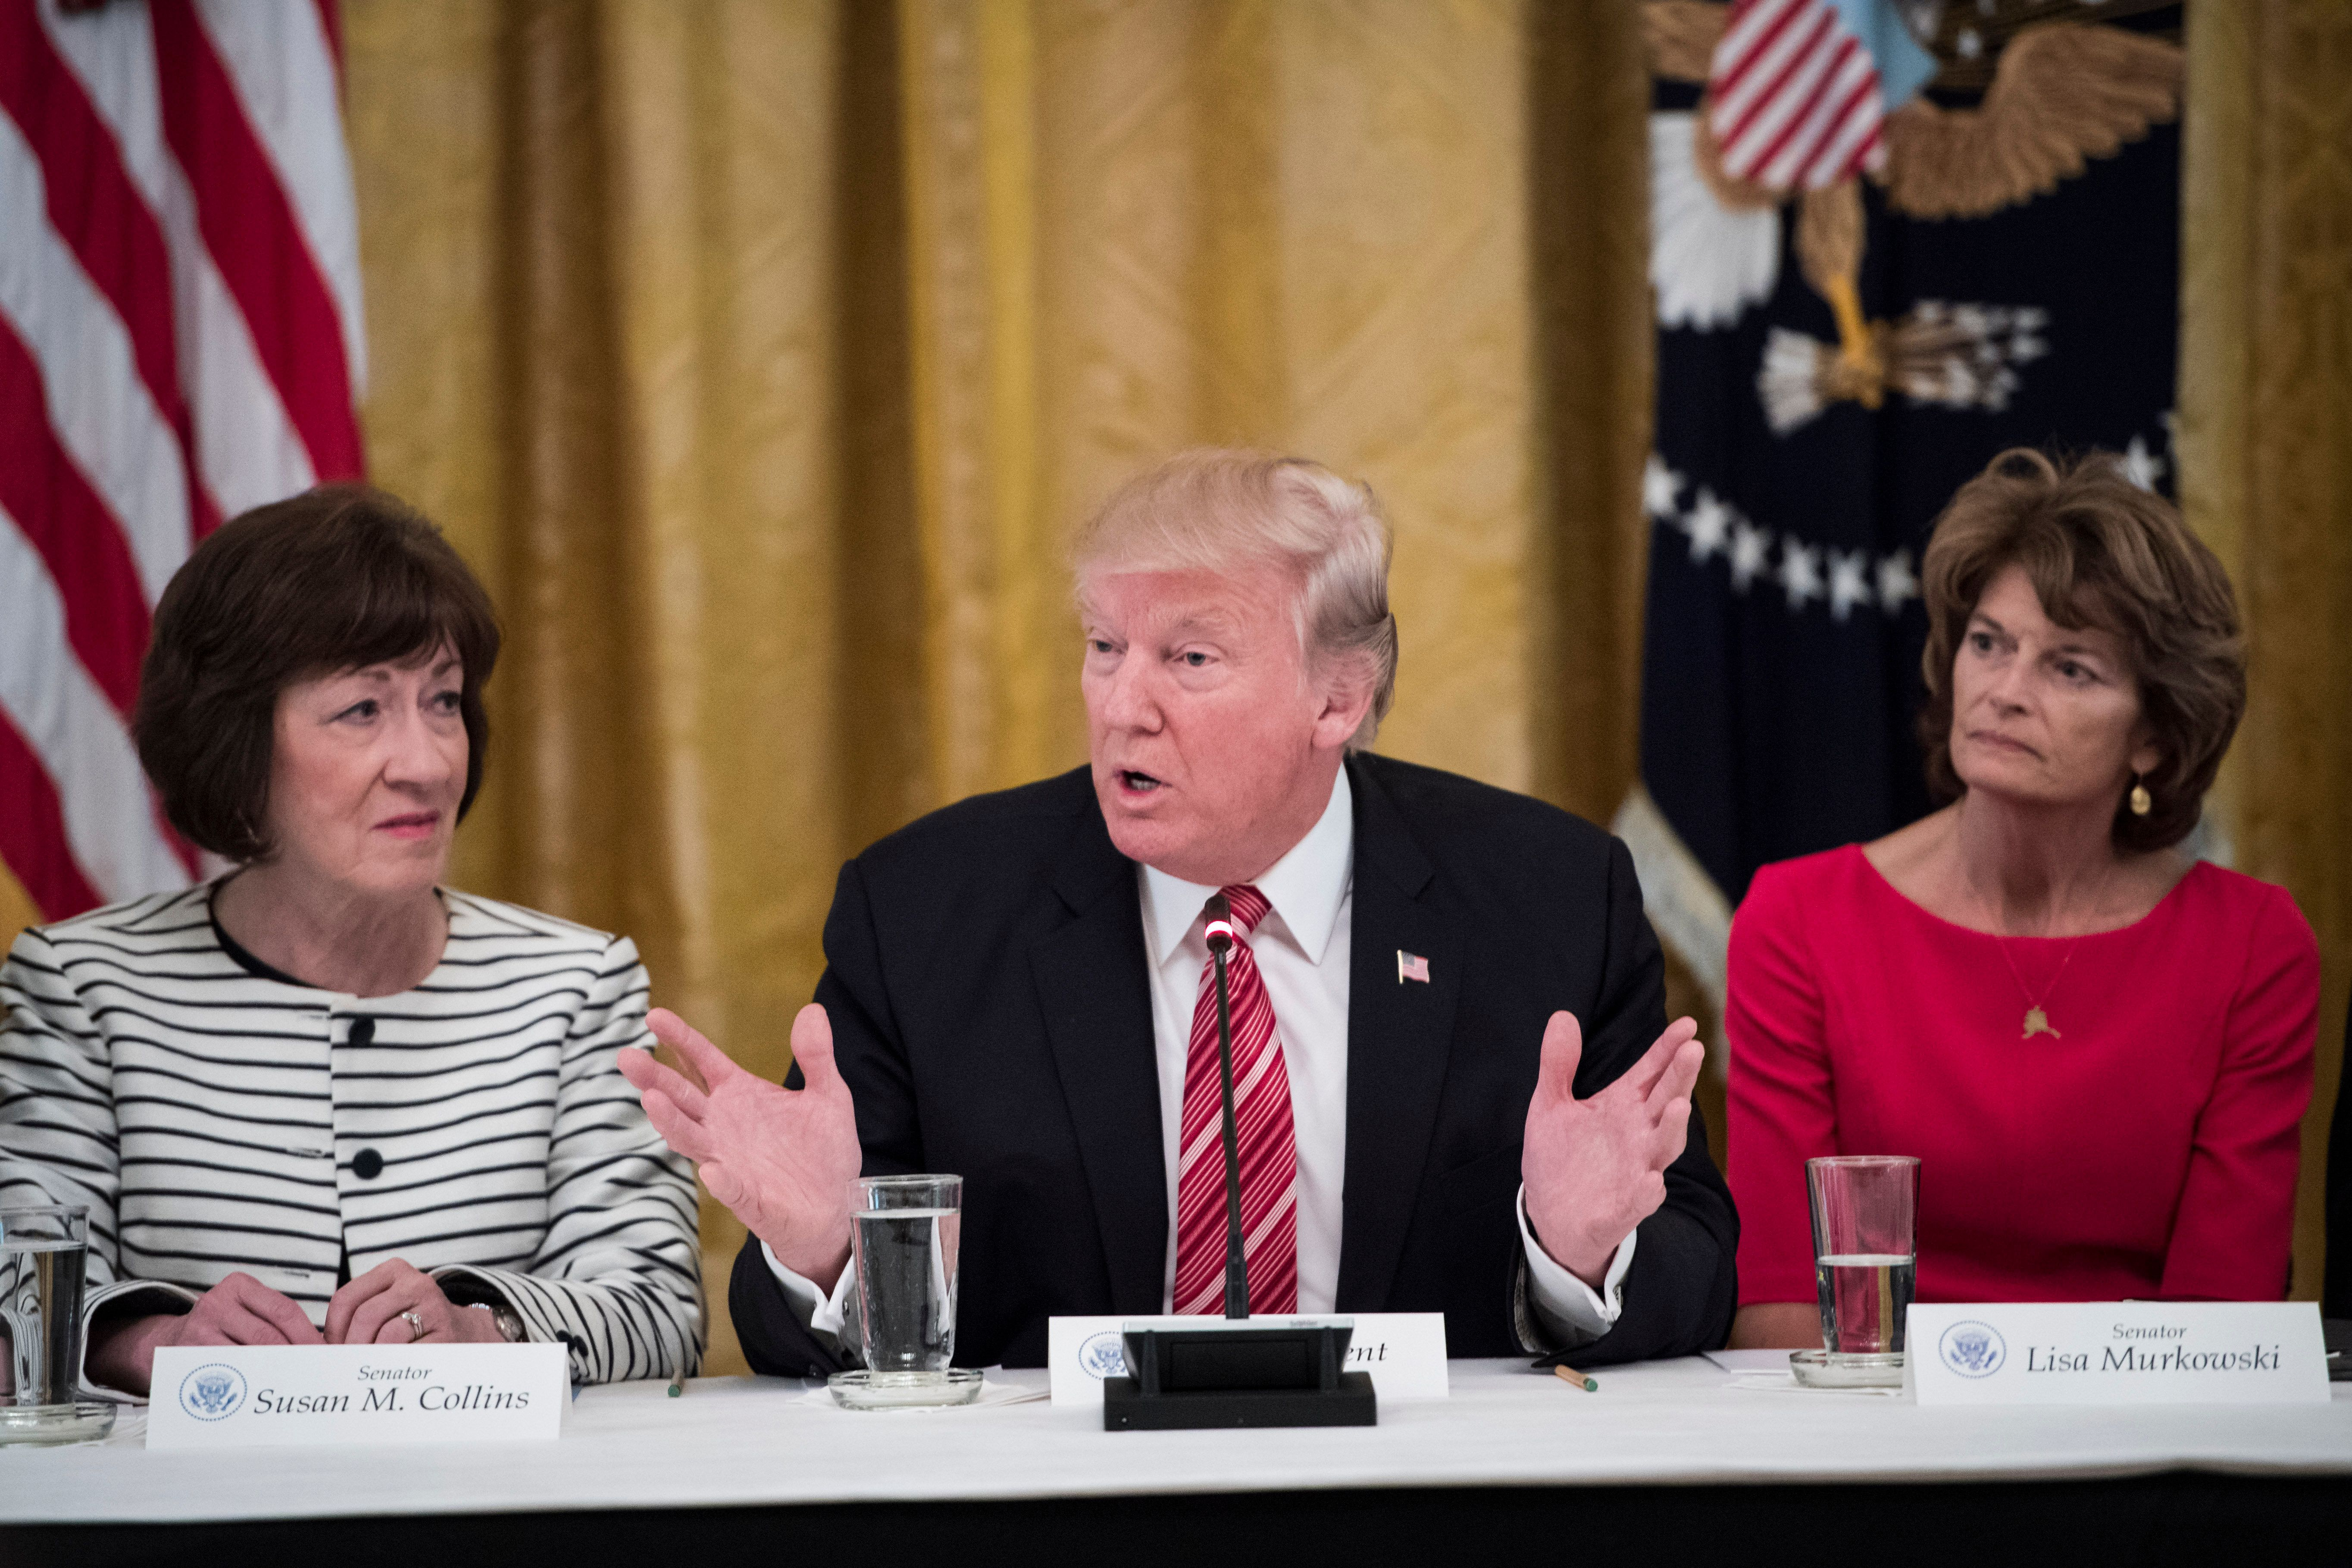 WASHINGTON, DC - JUNE 27: President Donald Trump, center, speaks as he meets with Republican senators about health care in the East Room of the White House of the White House in Washington, DC on Tuesday, June 27, 2017. Seated with him are Sen. Susan Collins, R-Maine, left, and Sen. Lisa Murkowski, R-Alaska, right, (Photo by Jabin Botsford/The Washington Post via Getty Images)